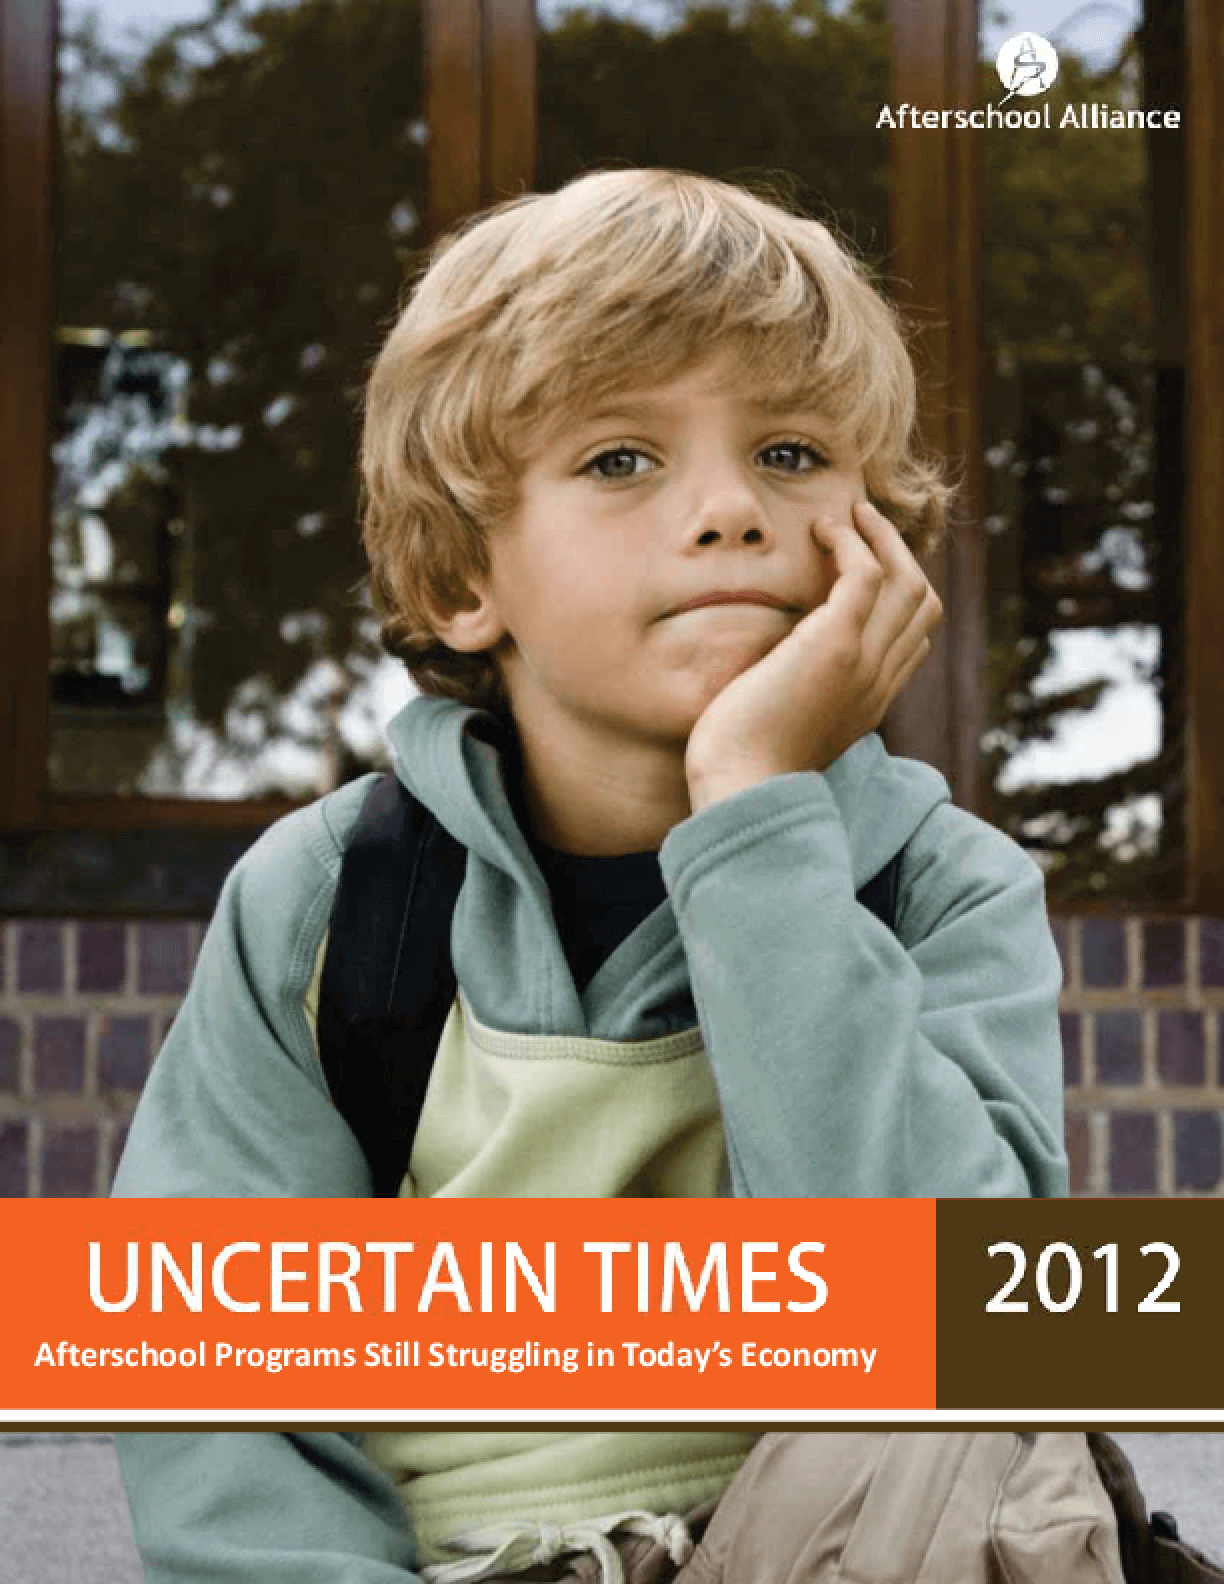 Uncertain Times 2012: Afterschool Programs Still Struggling in Today's Economy